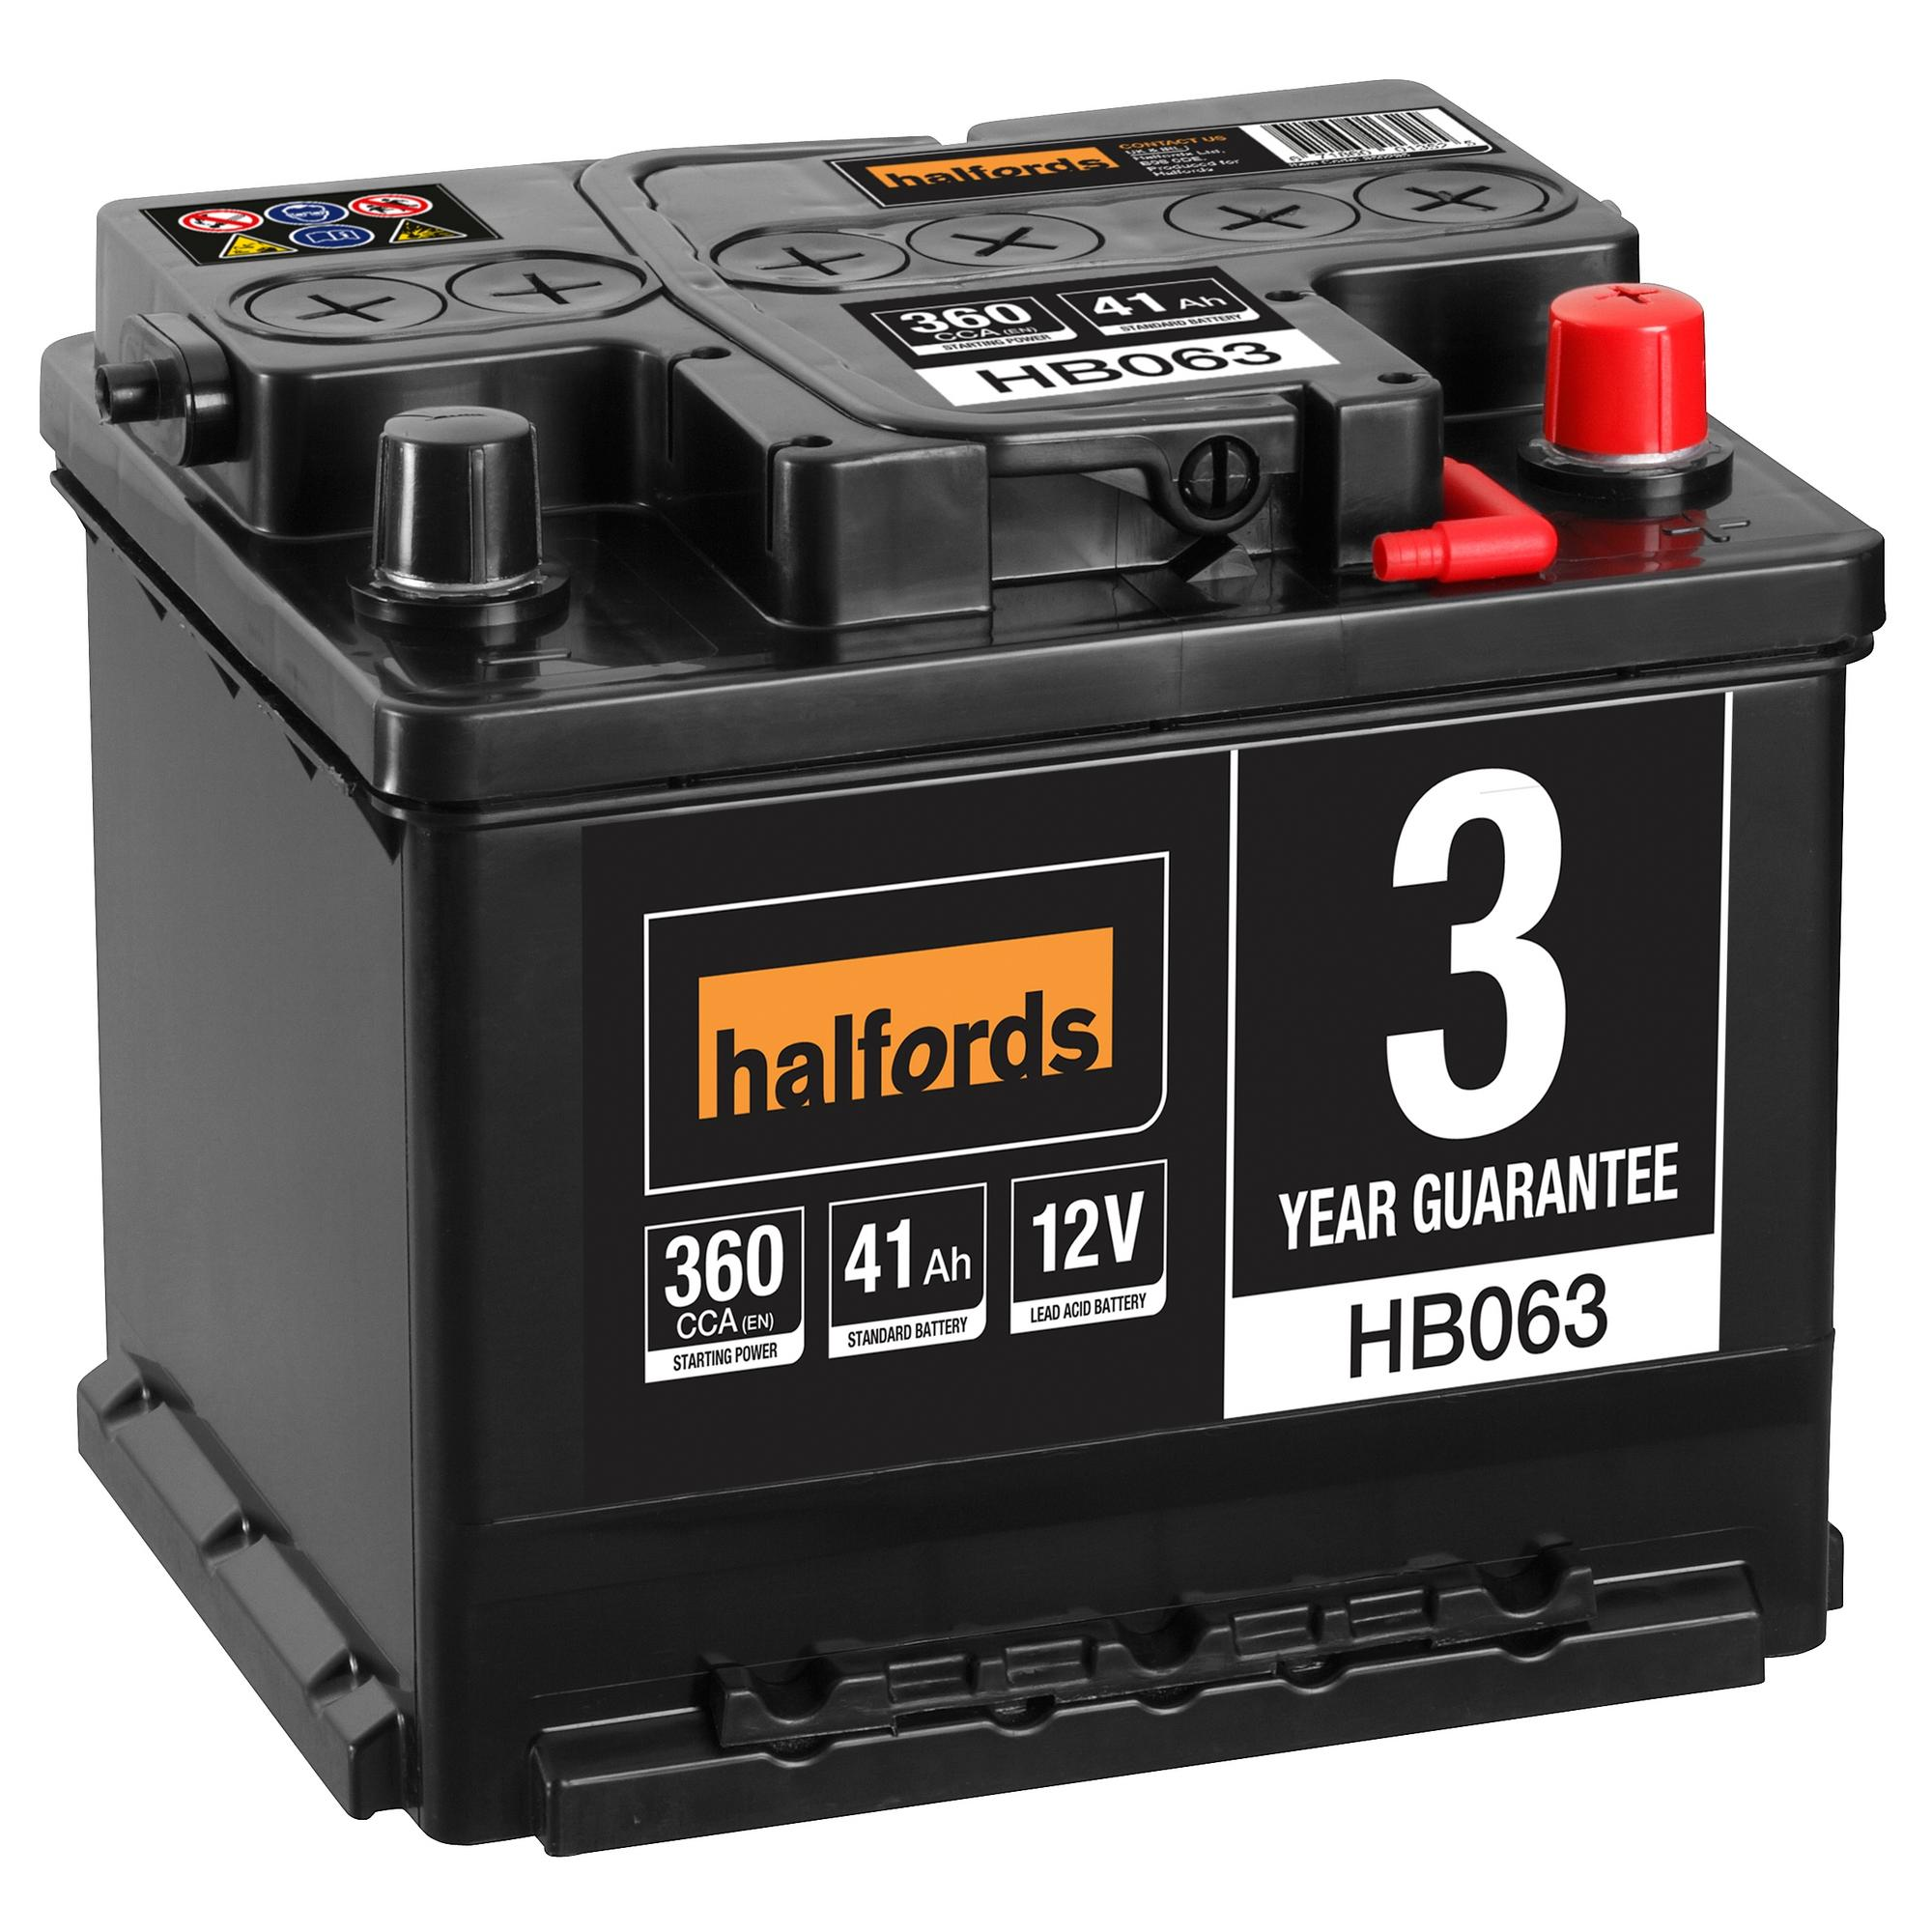 Workshop Focus What You Need To Know About Your Tractors Battery Dry Cell Diagram Wet The Amp Hour Rating Is A Theoretical Measure Of Capacity Or How Much Usable Energy Can Actually Be Stored In